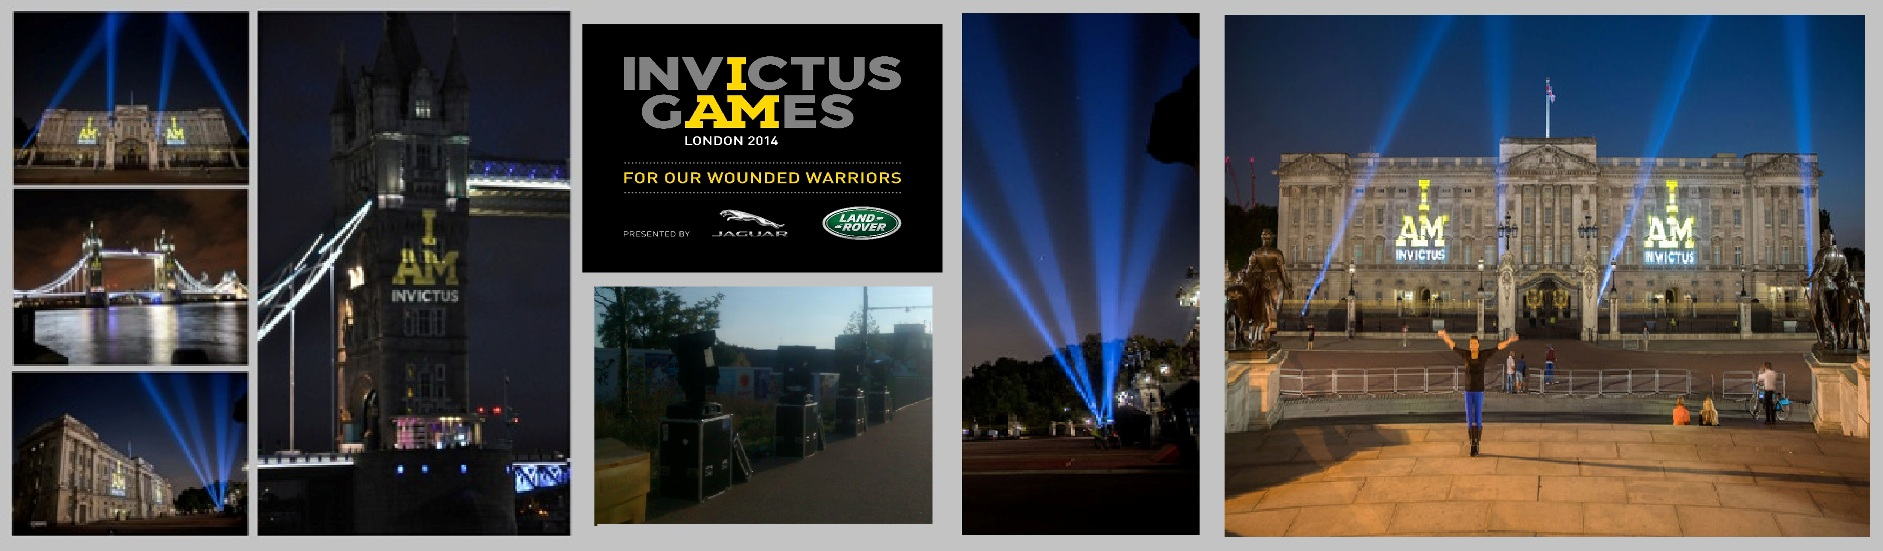 Searchlights over London for Invictus Games